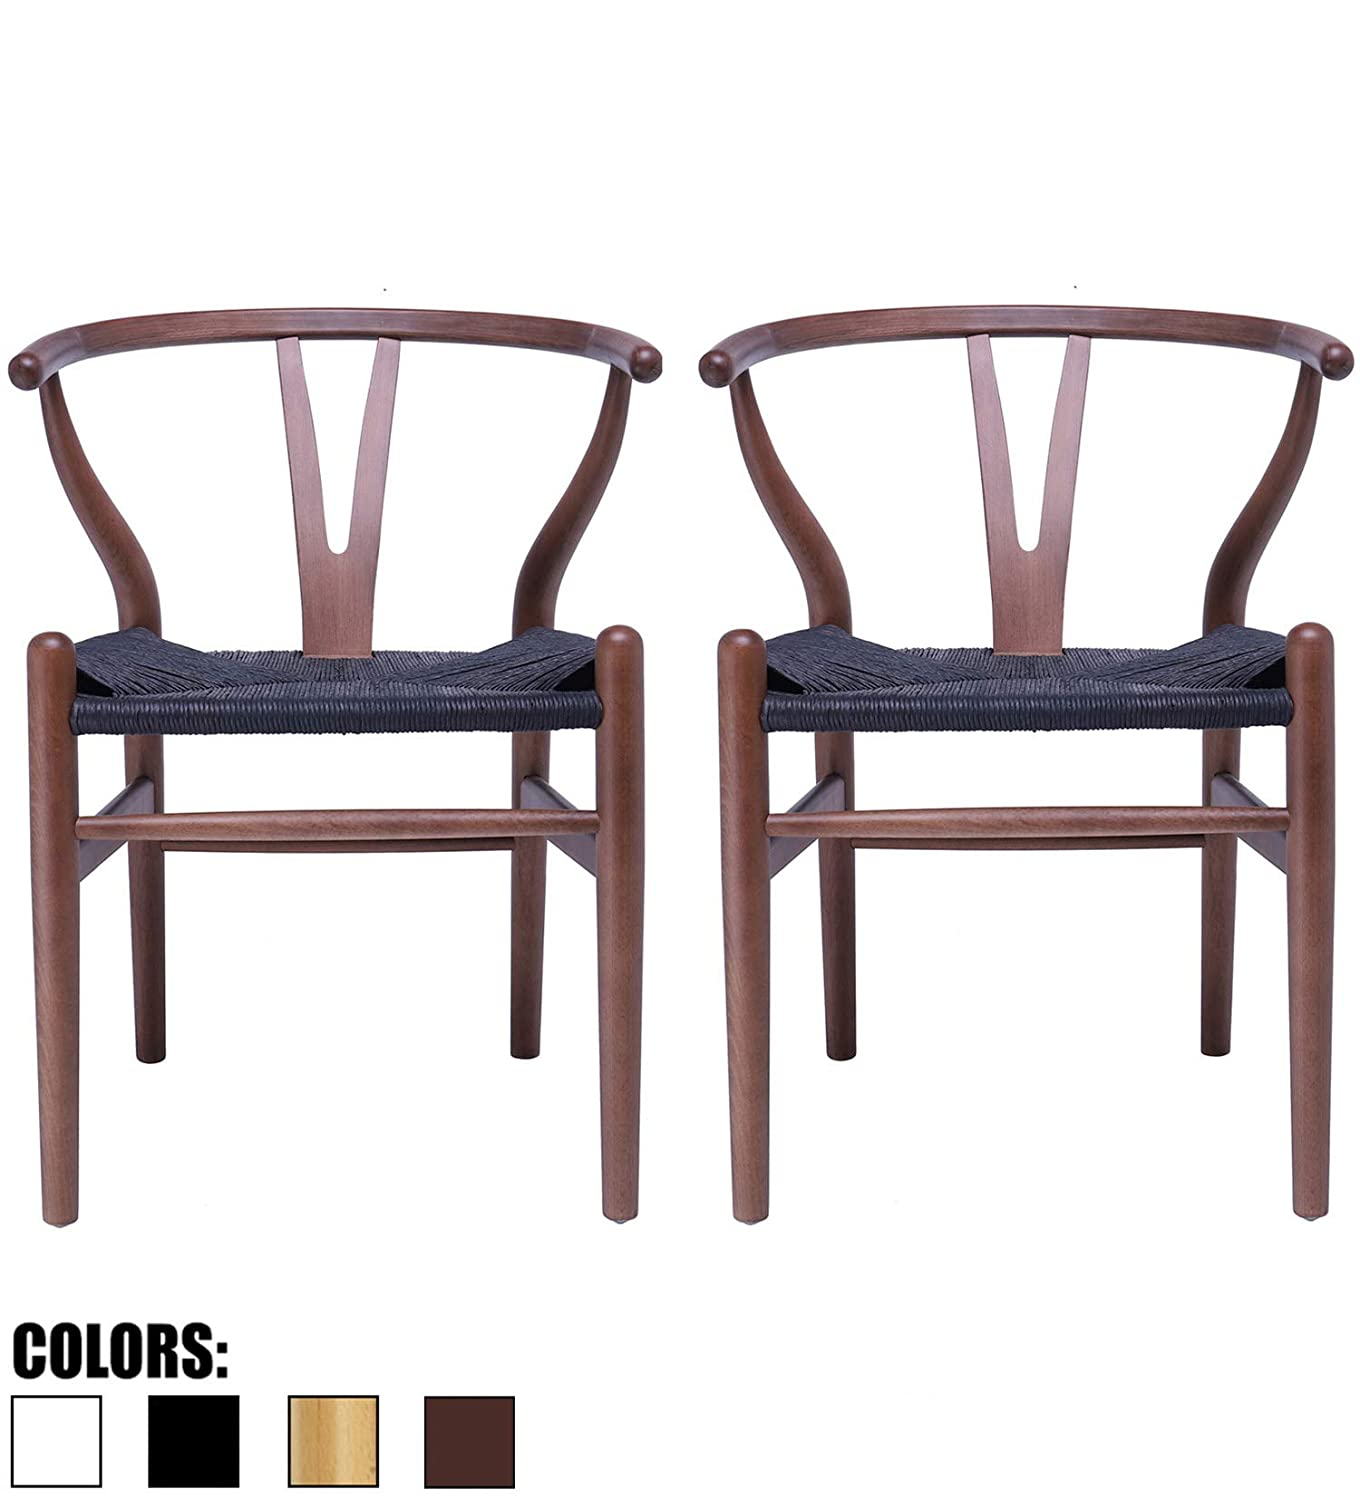 2xhome Set of 2 Wishbone Wood Armchair with Arms Open Y Back Open Mid Century Modern Contemporary Chair Dining Chairs Woven Black Seat Living Desk Espresso